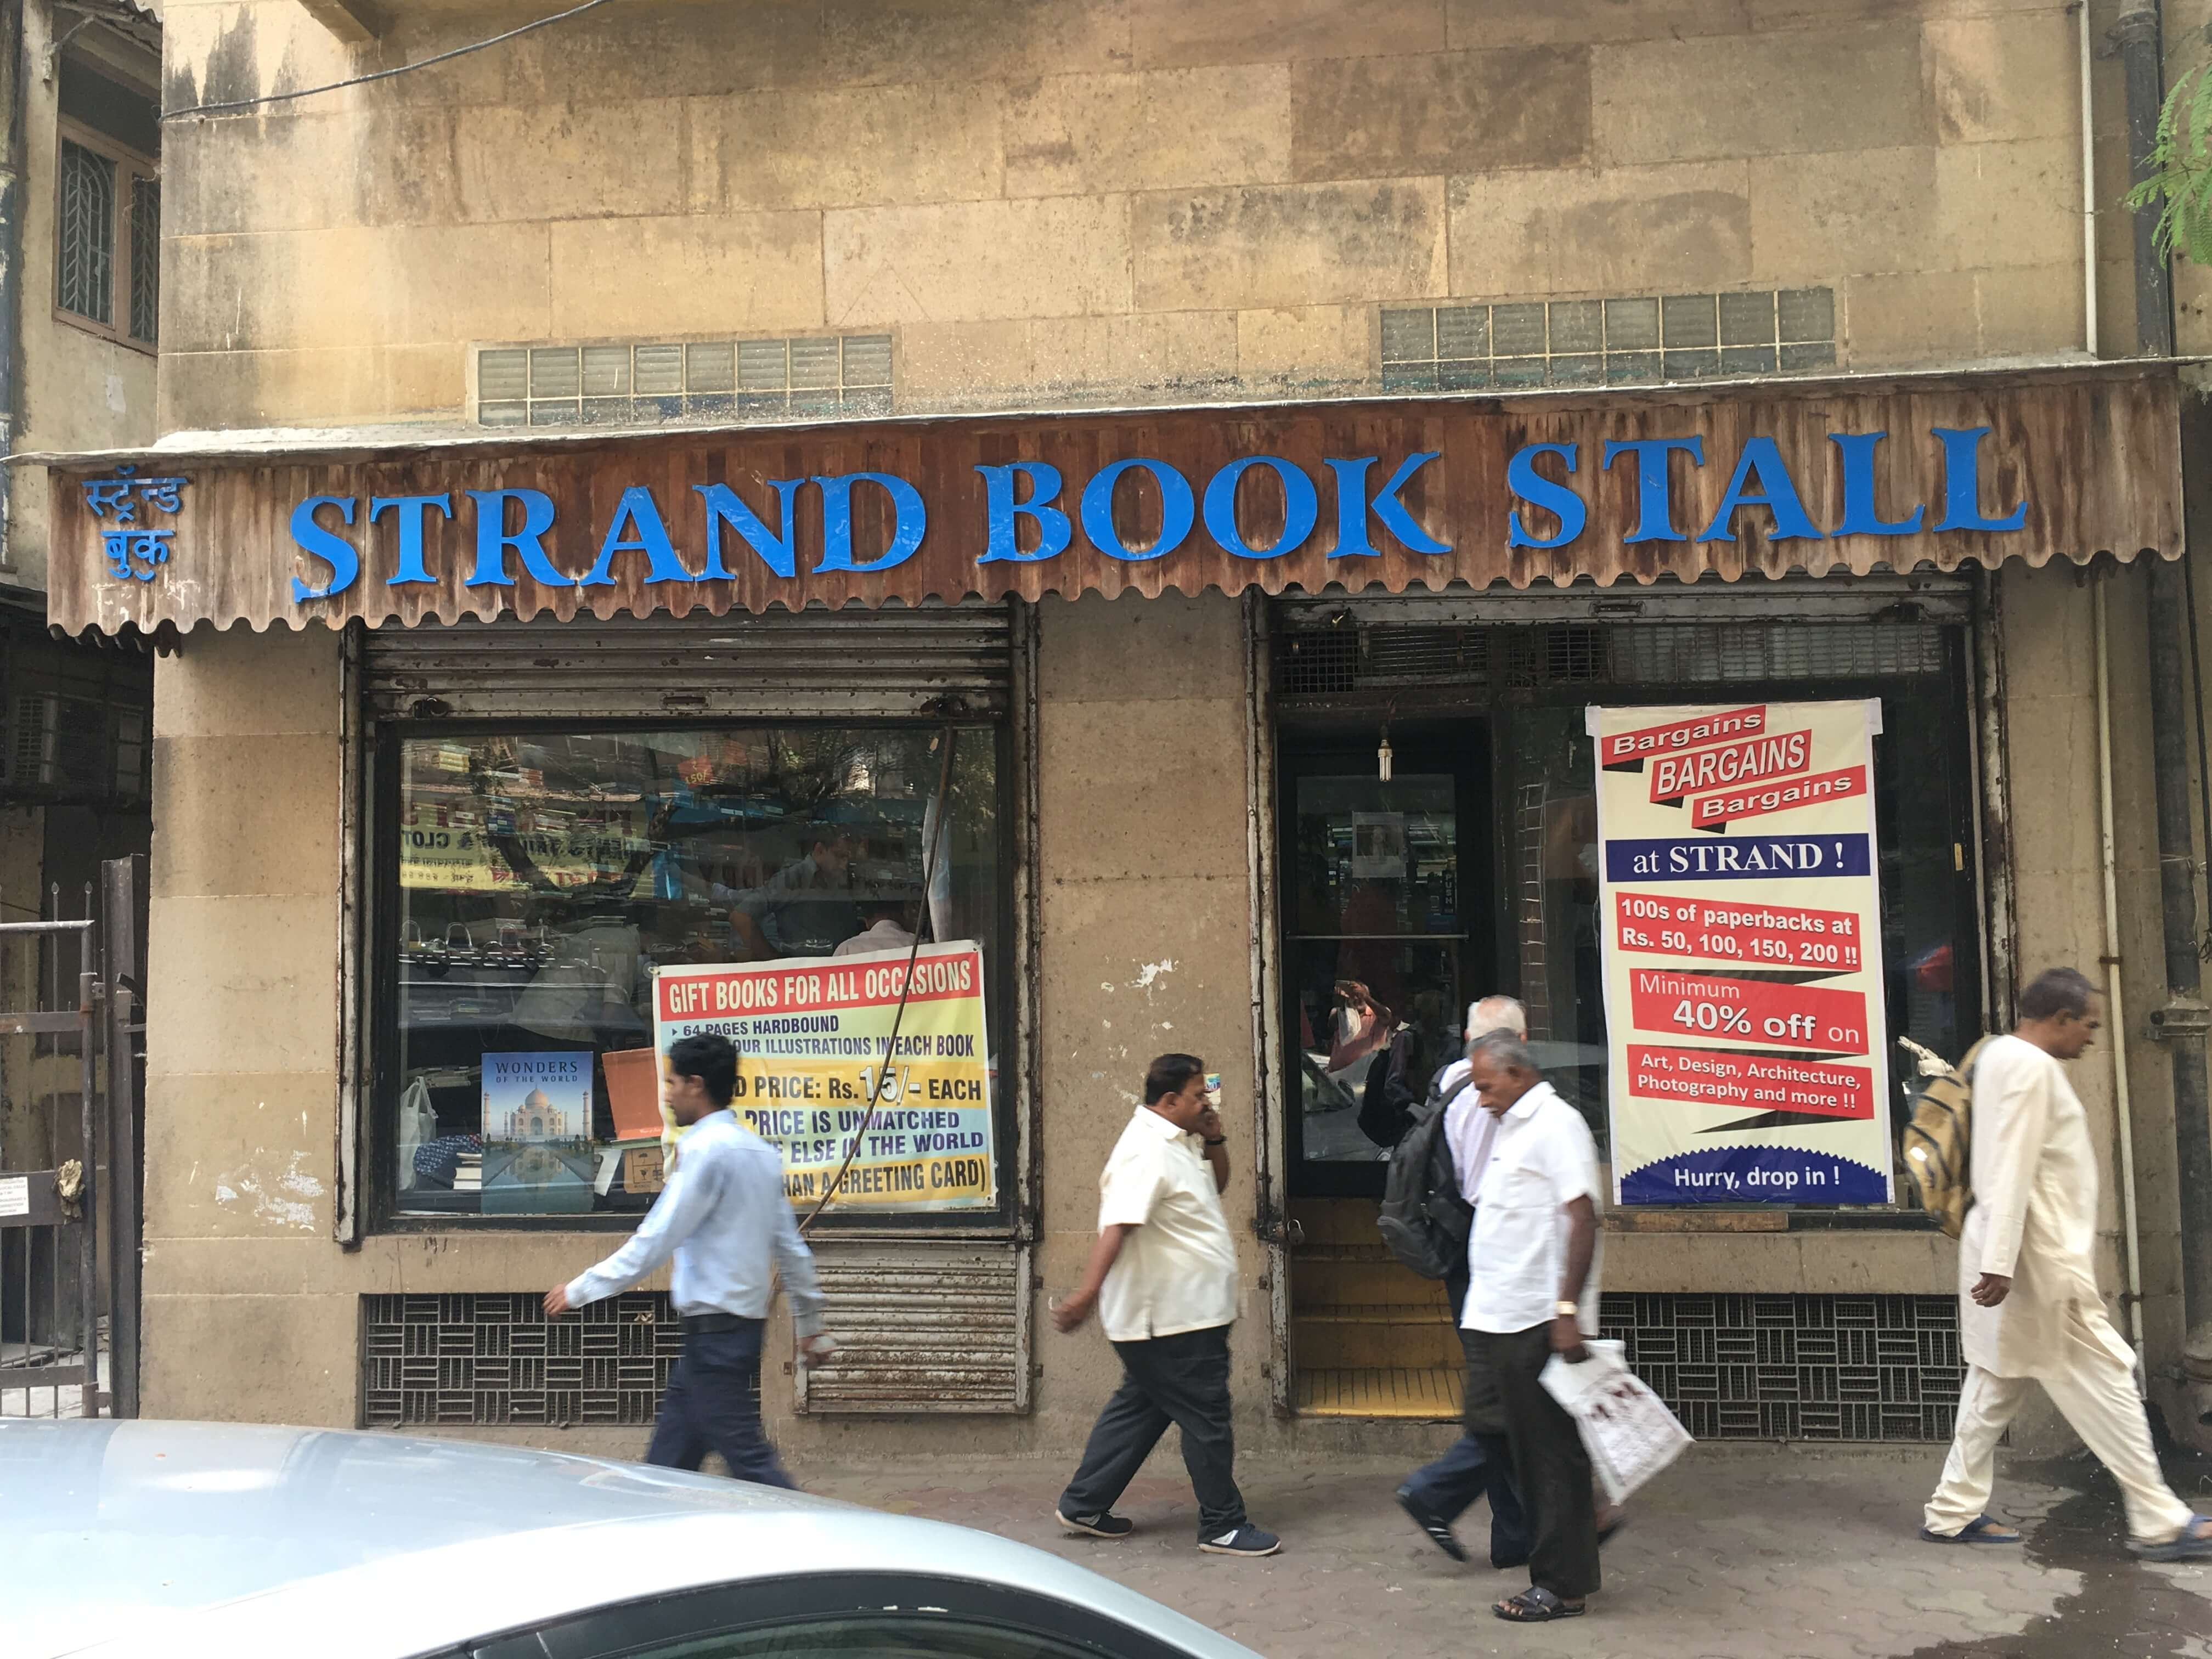 As Mumbai's Iconic Strand Book Stall Shuts Shop, It's the Personal Touch That Will Be Missed Most